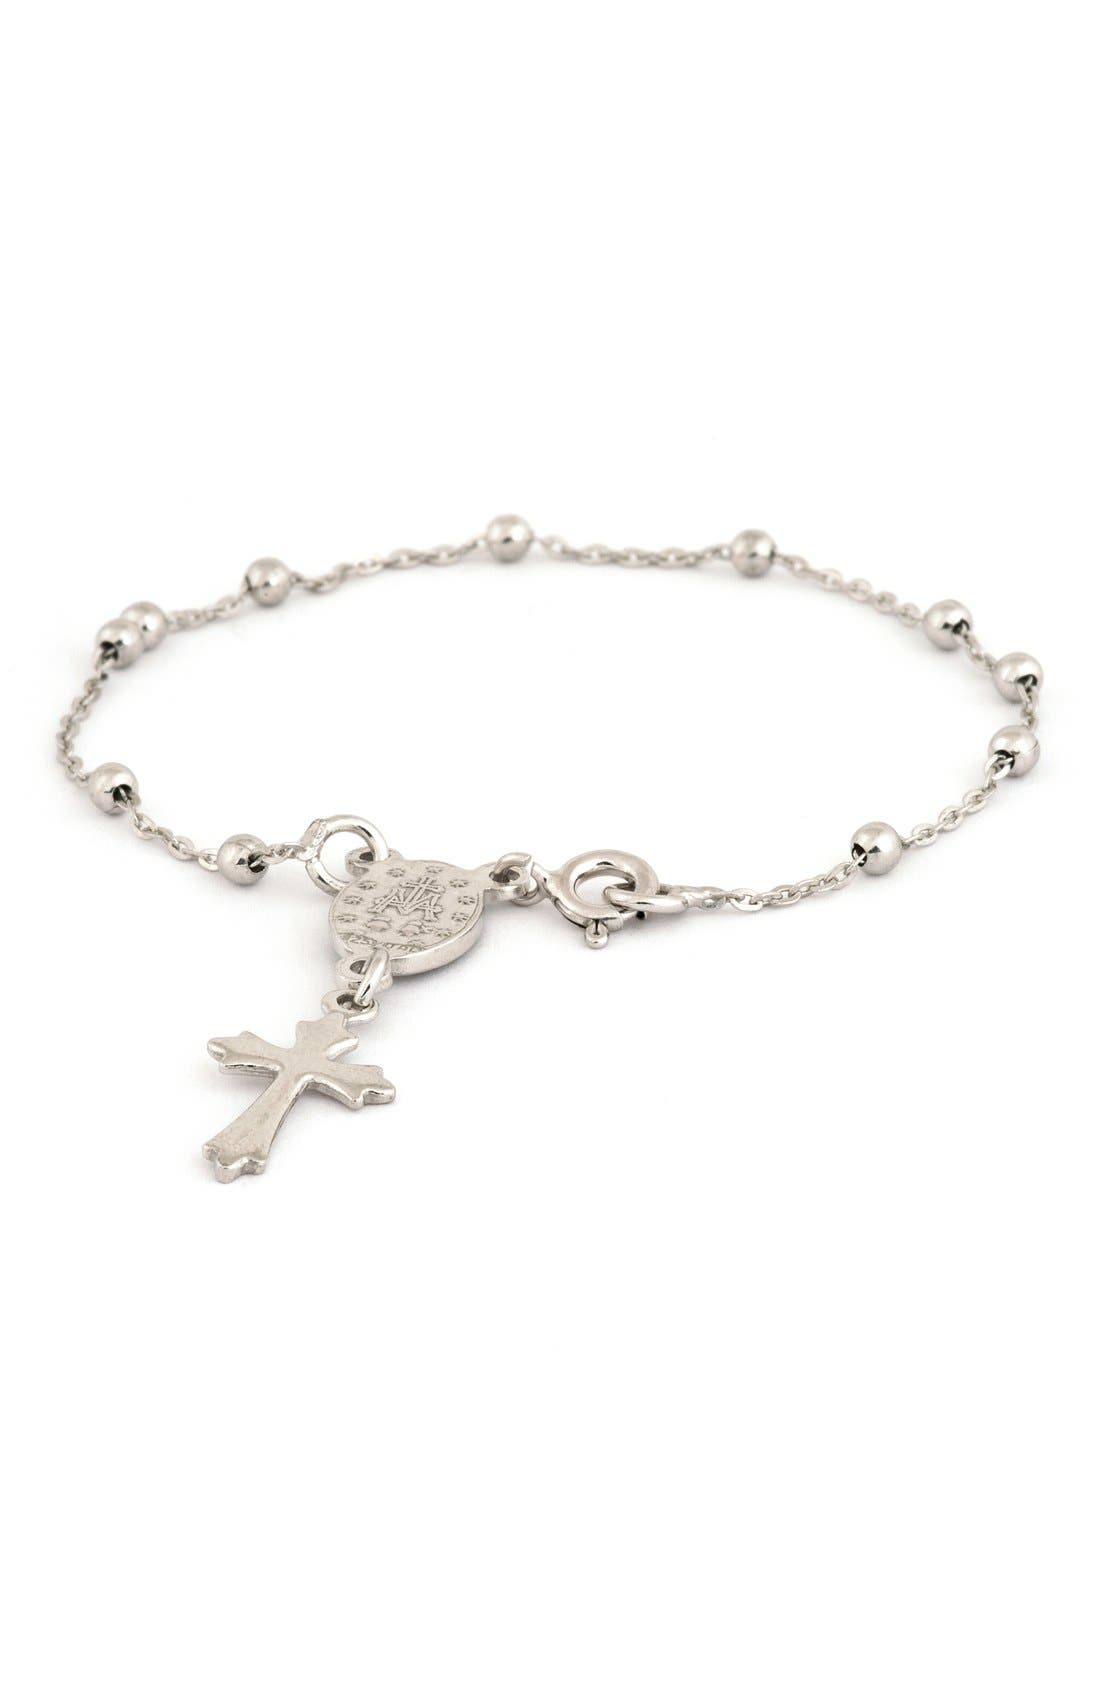 Cross & Miraculous Medal Sterling Silver Charm Bracelet,                         Main,                         color, None